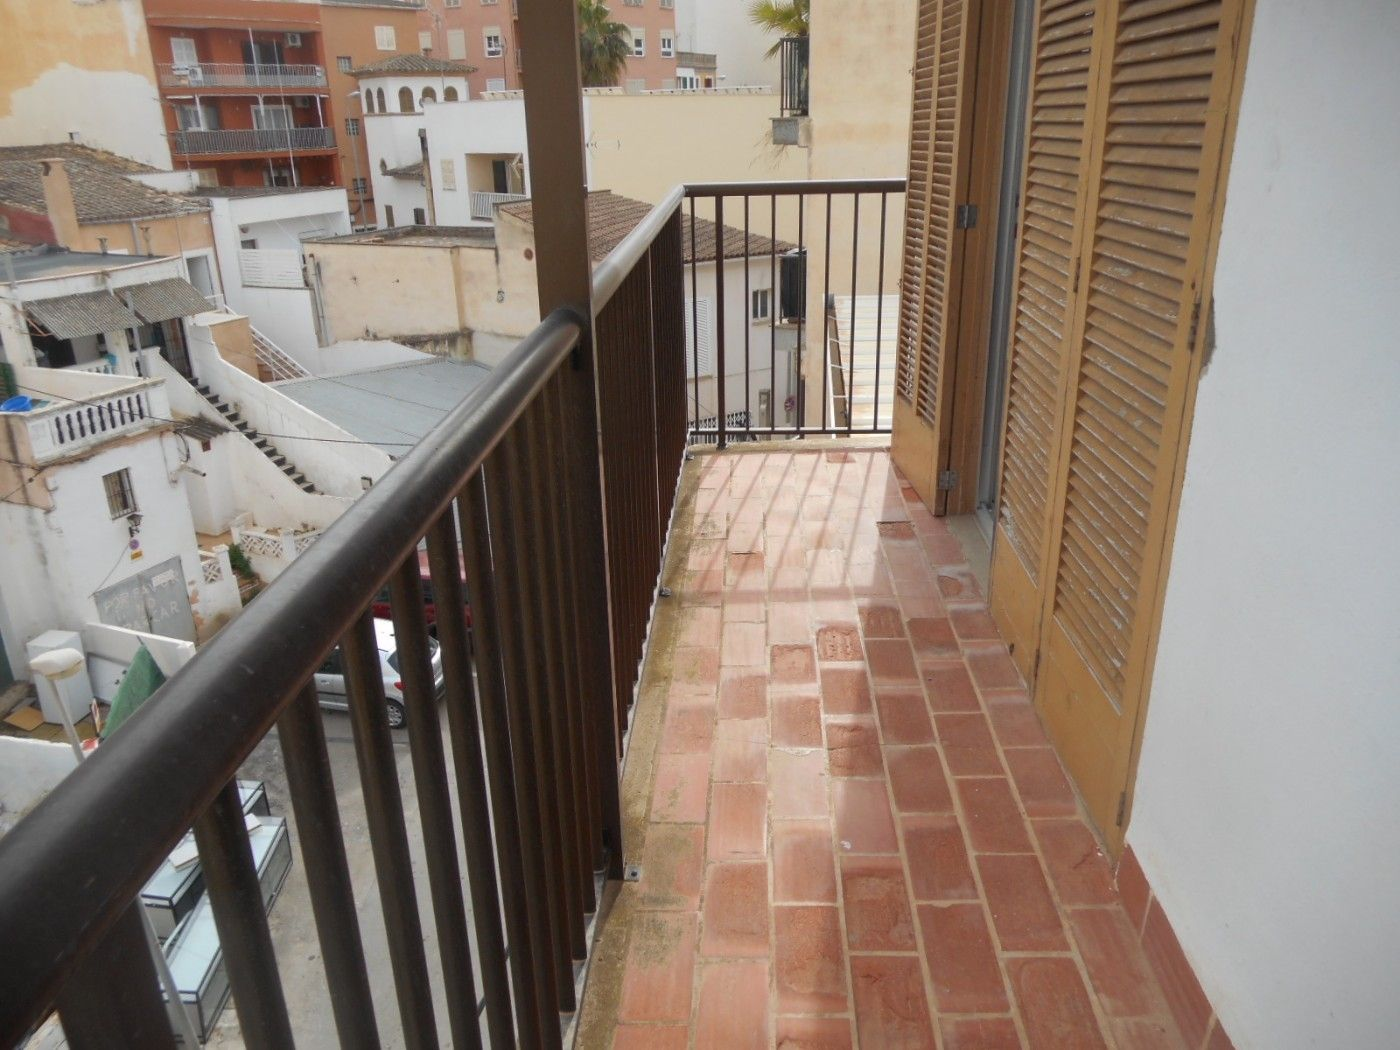 Flat  Carrer muntanya. Piso financiacion 100%